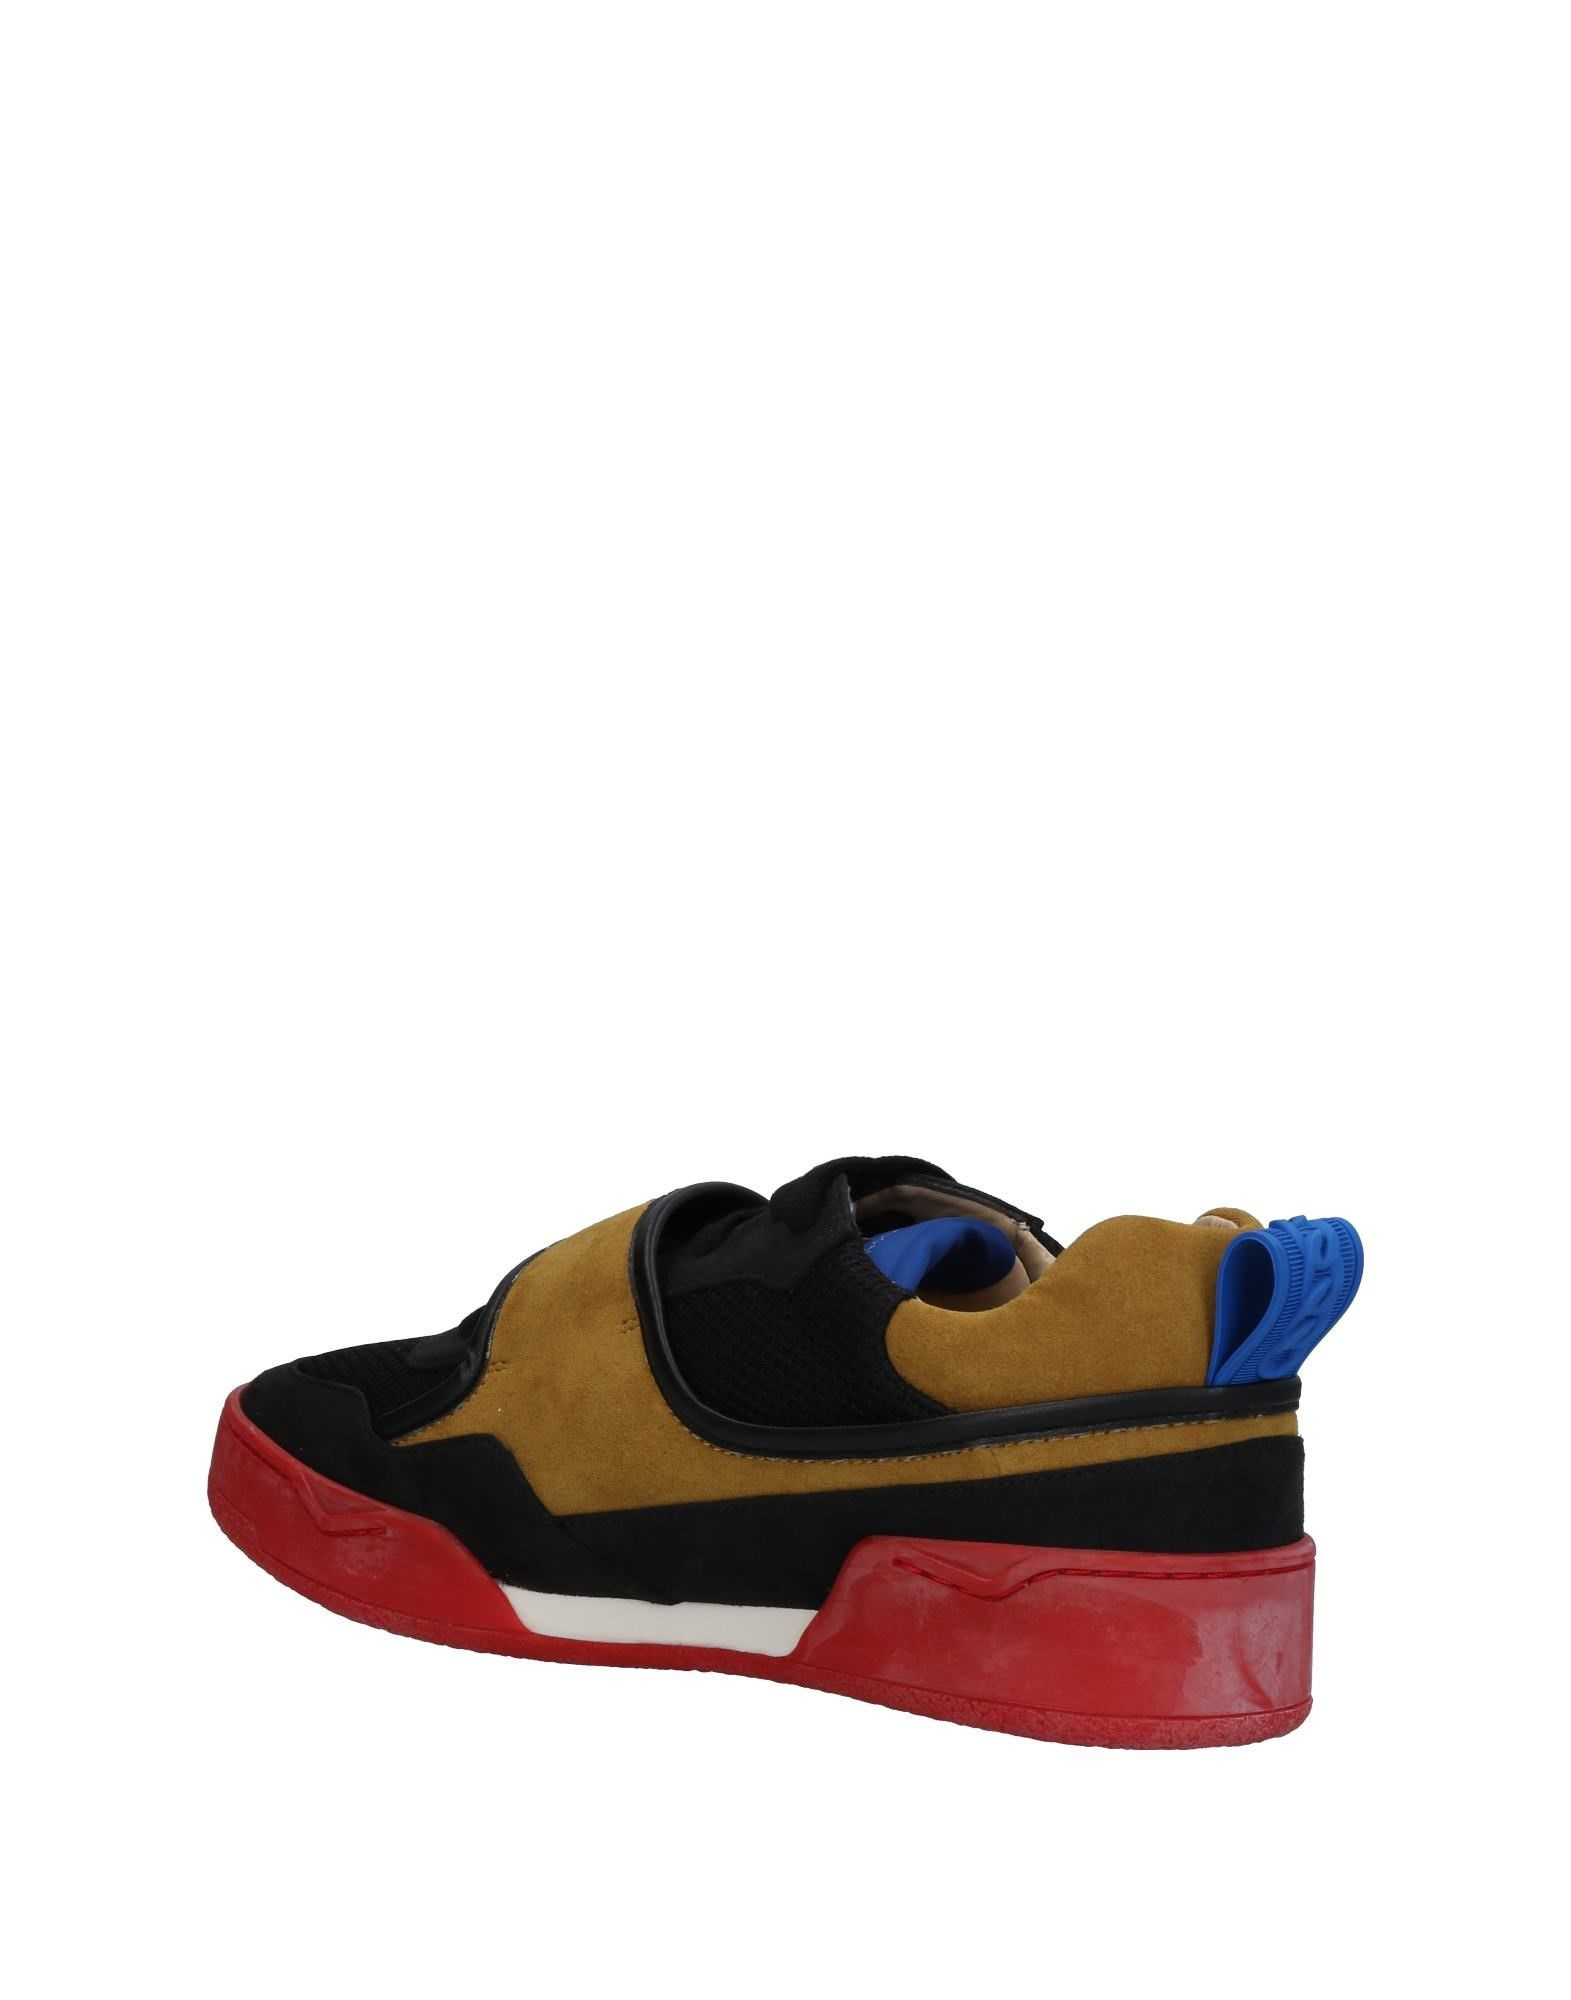 Stella Mccartney Sneakers Herren  11462162BP 11462162BP  a86eef